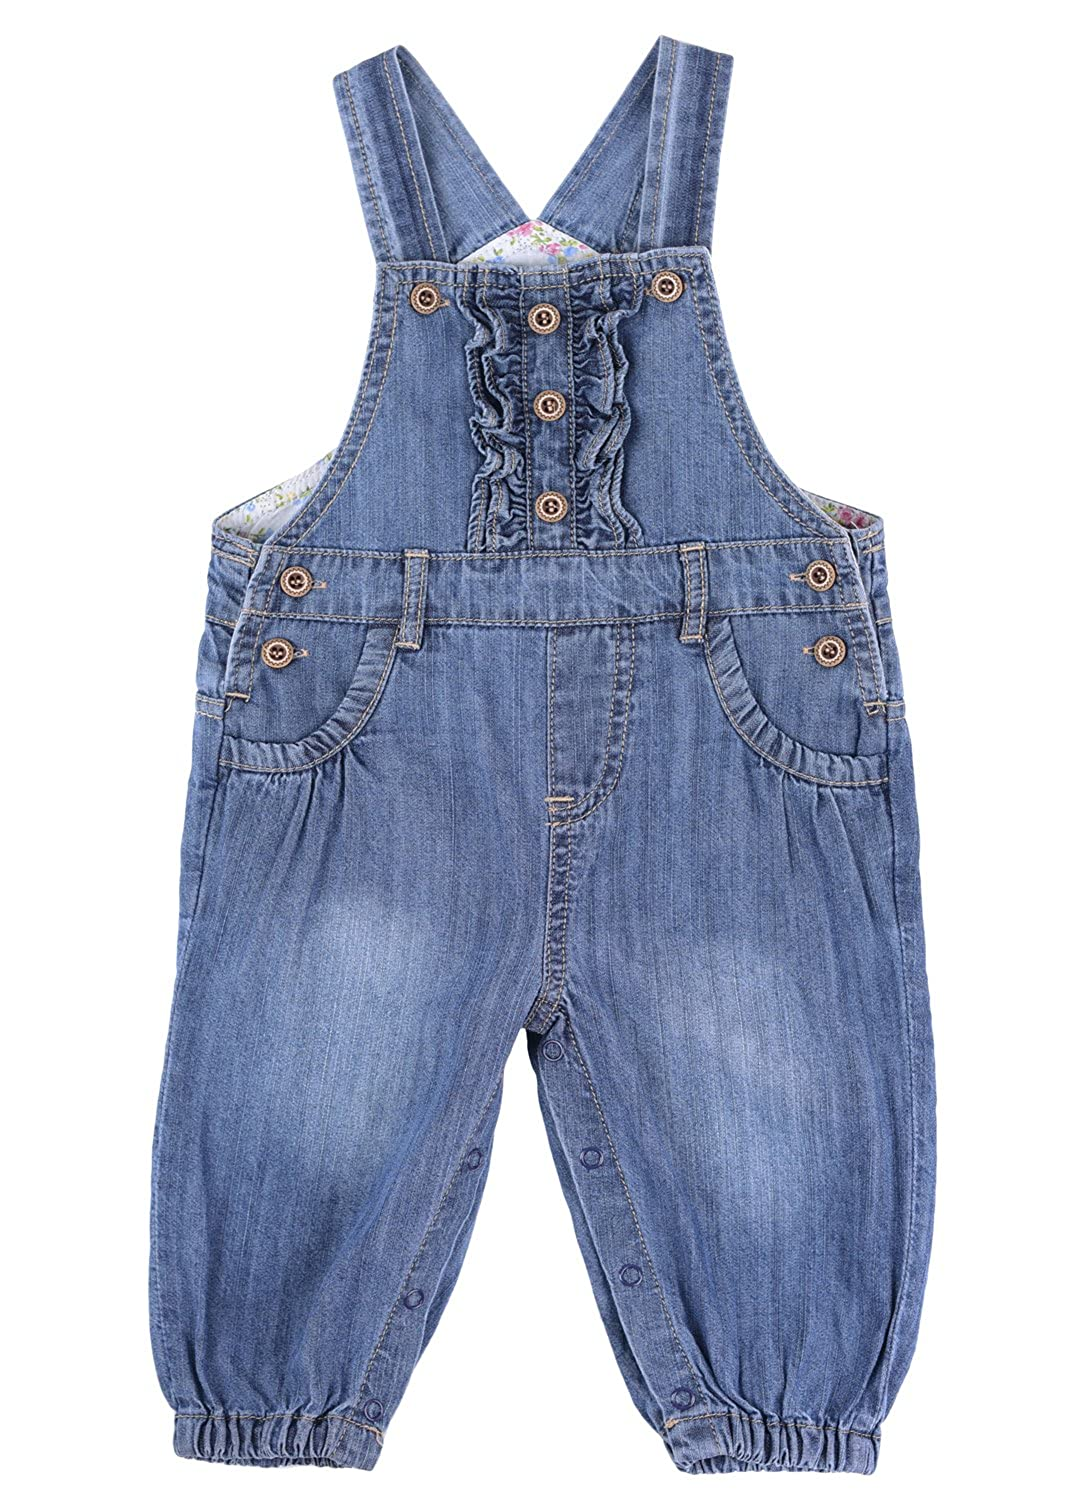 BUYIIT Baby& Little Girls Ruffles Dungarees Washed Soft Denim Bib Overalls Jean Outfit